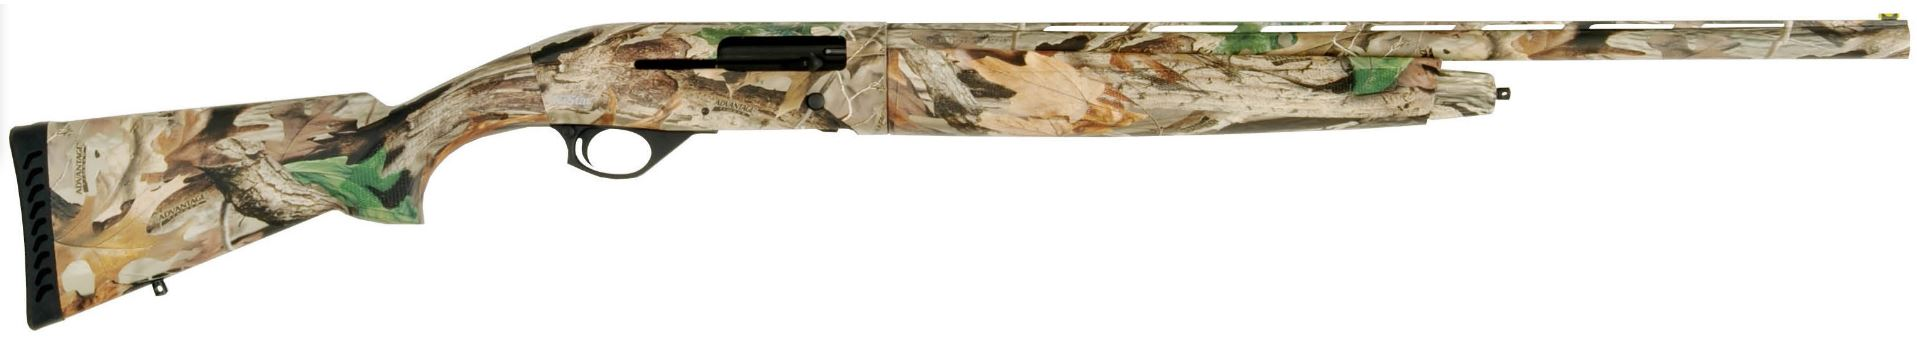 TriStar Sporting Arms Viper G2 Camo 20 Gauge